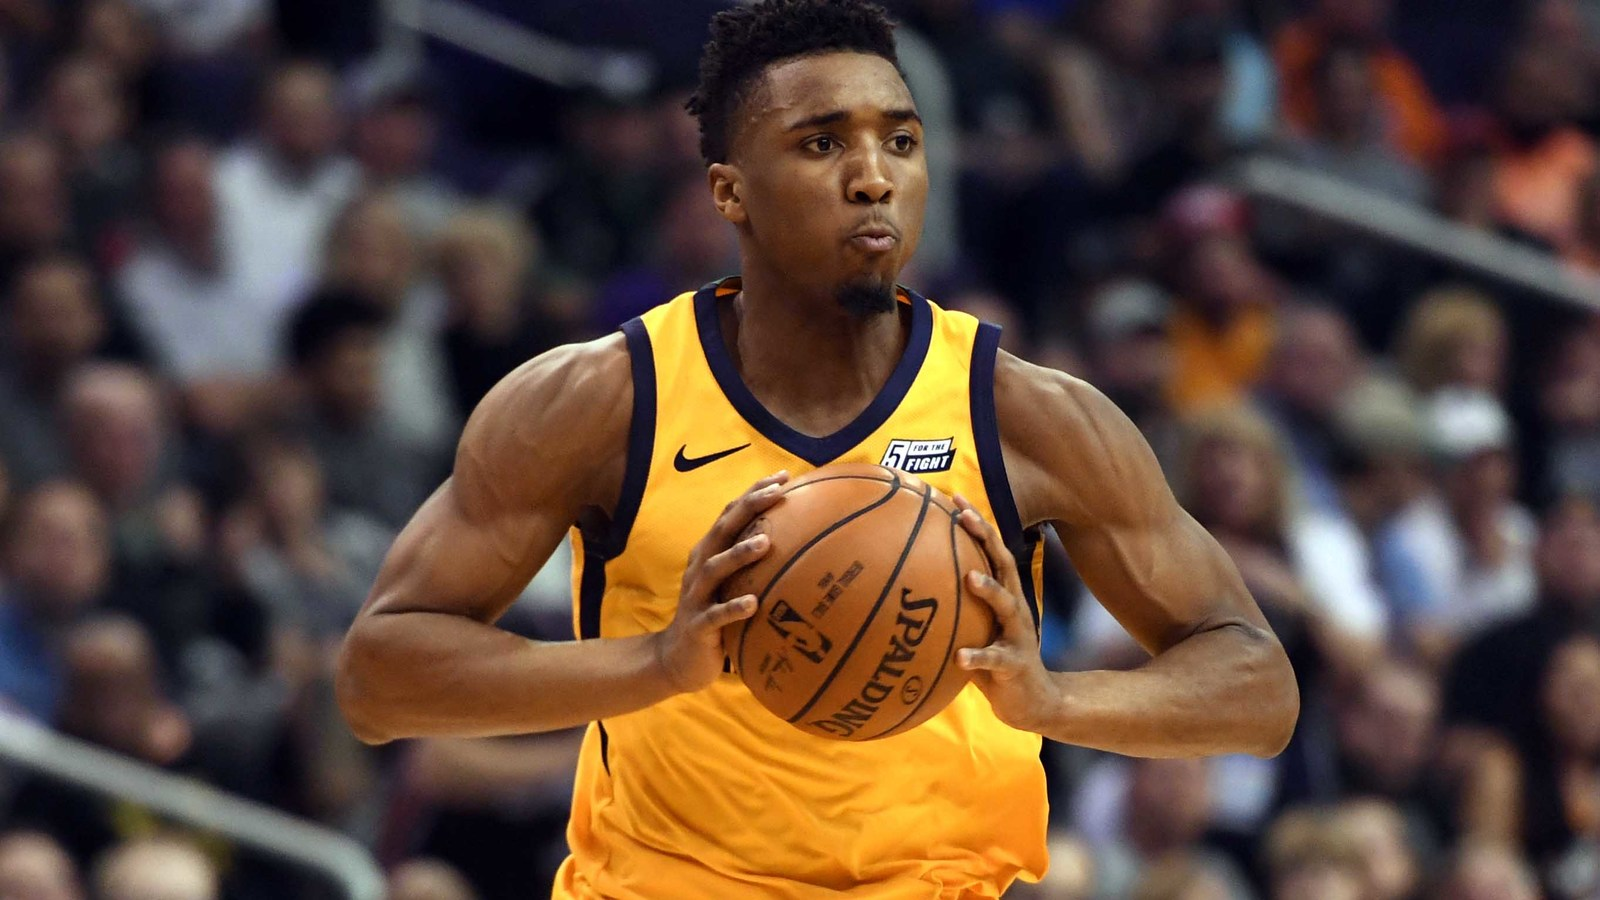 donovan mitchell computer wallpaper 440